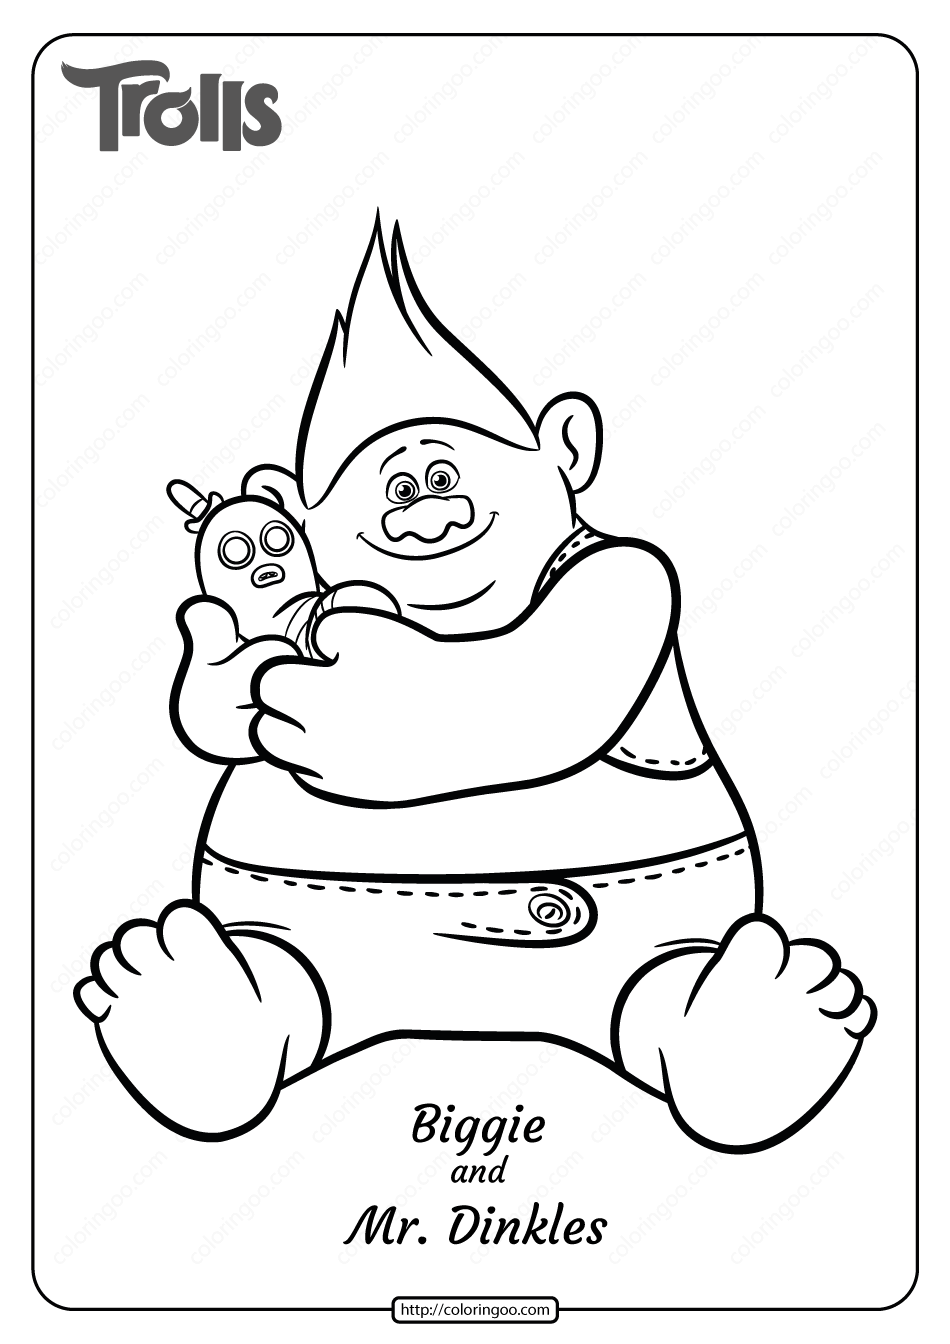 Free Printable Biggie And Mr Dinkles Coloring Page Precious Moments Coloring Pages Coloring Pages Poppy Coloring Page [ 1344 x 950 Pixel ]